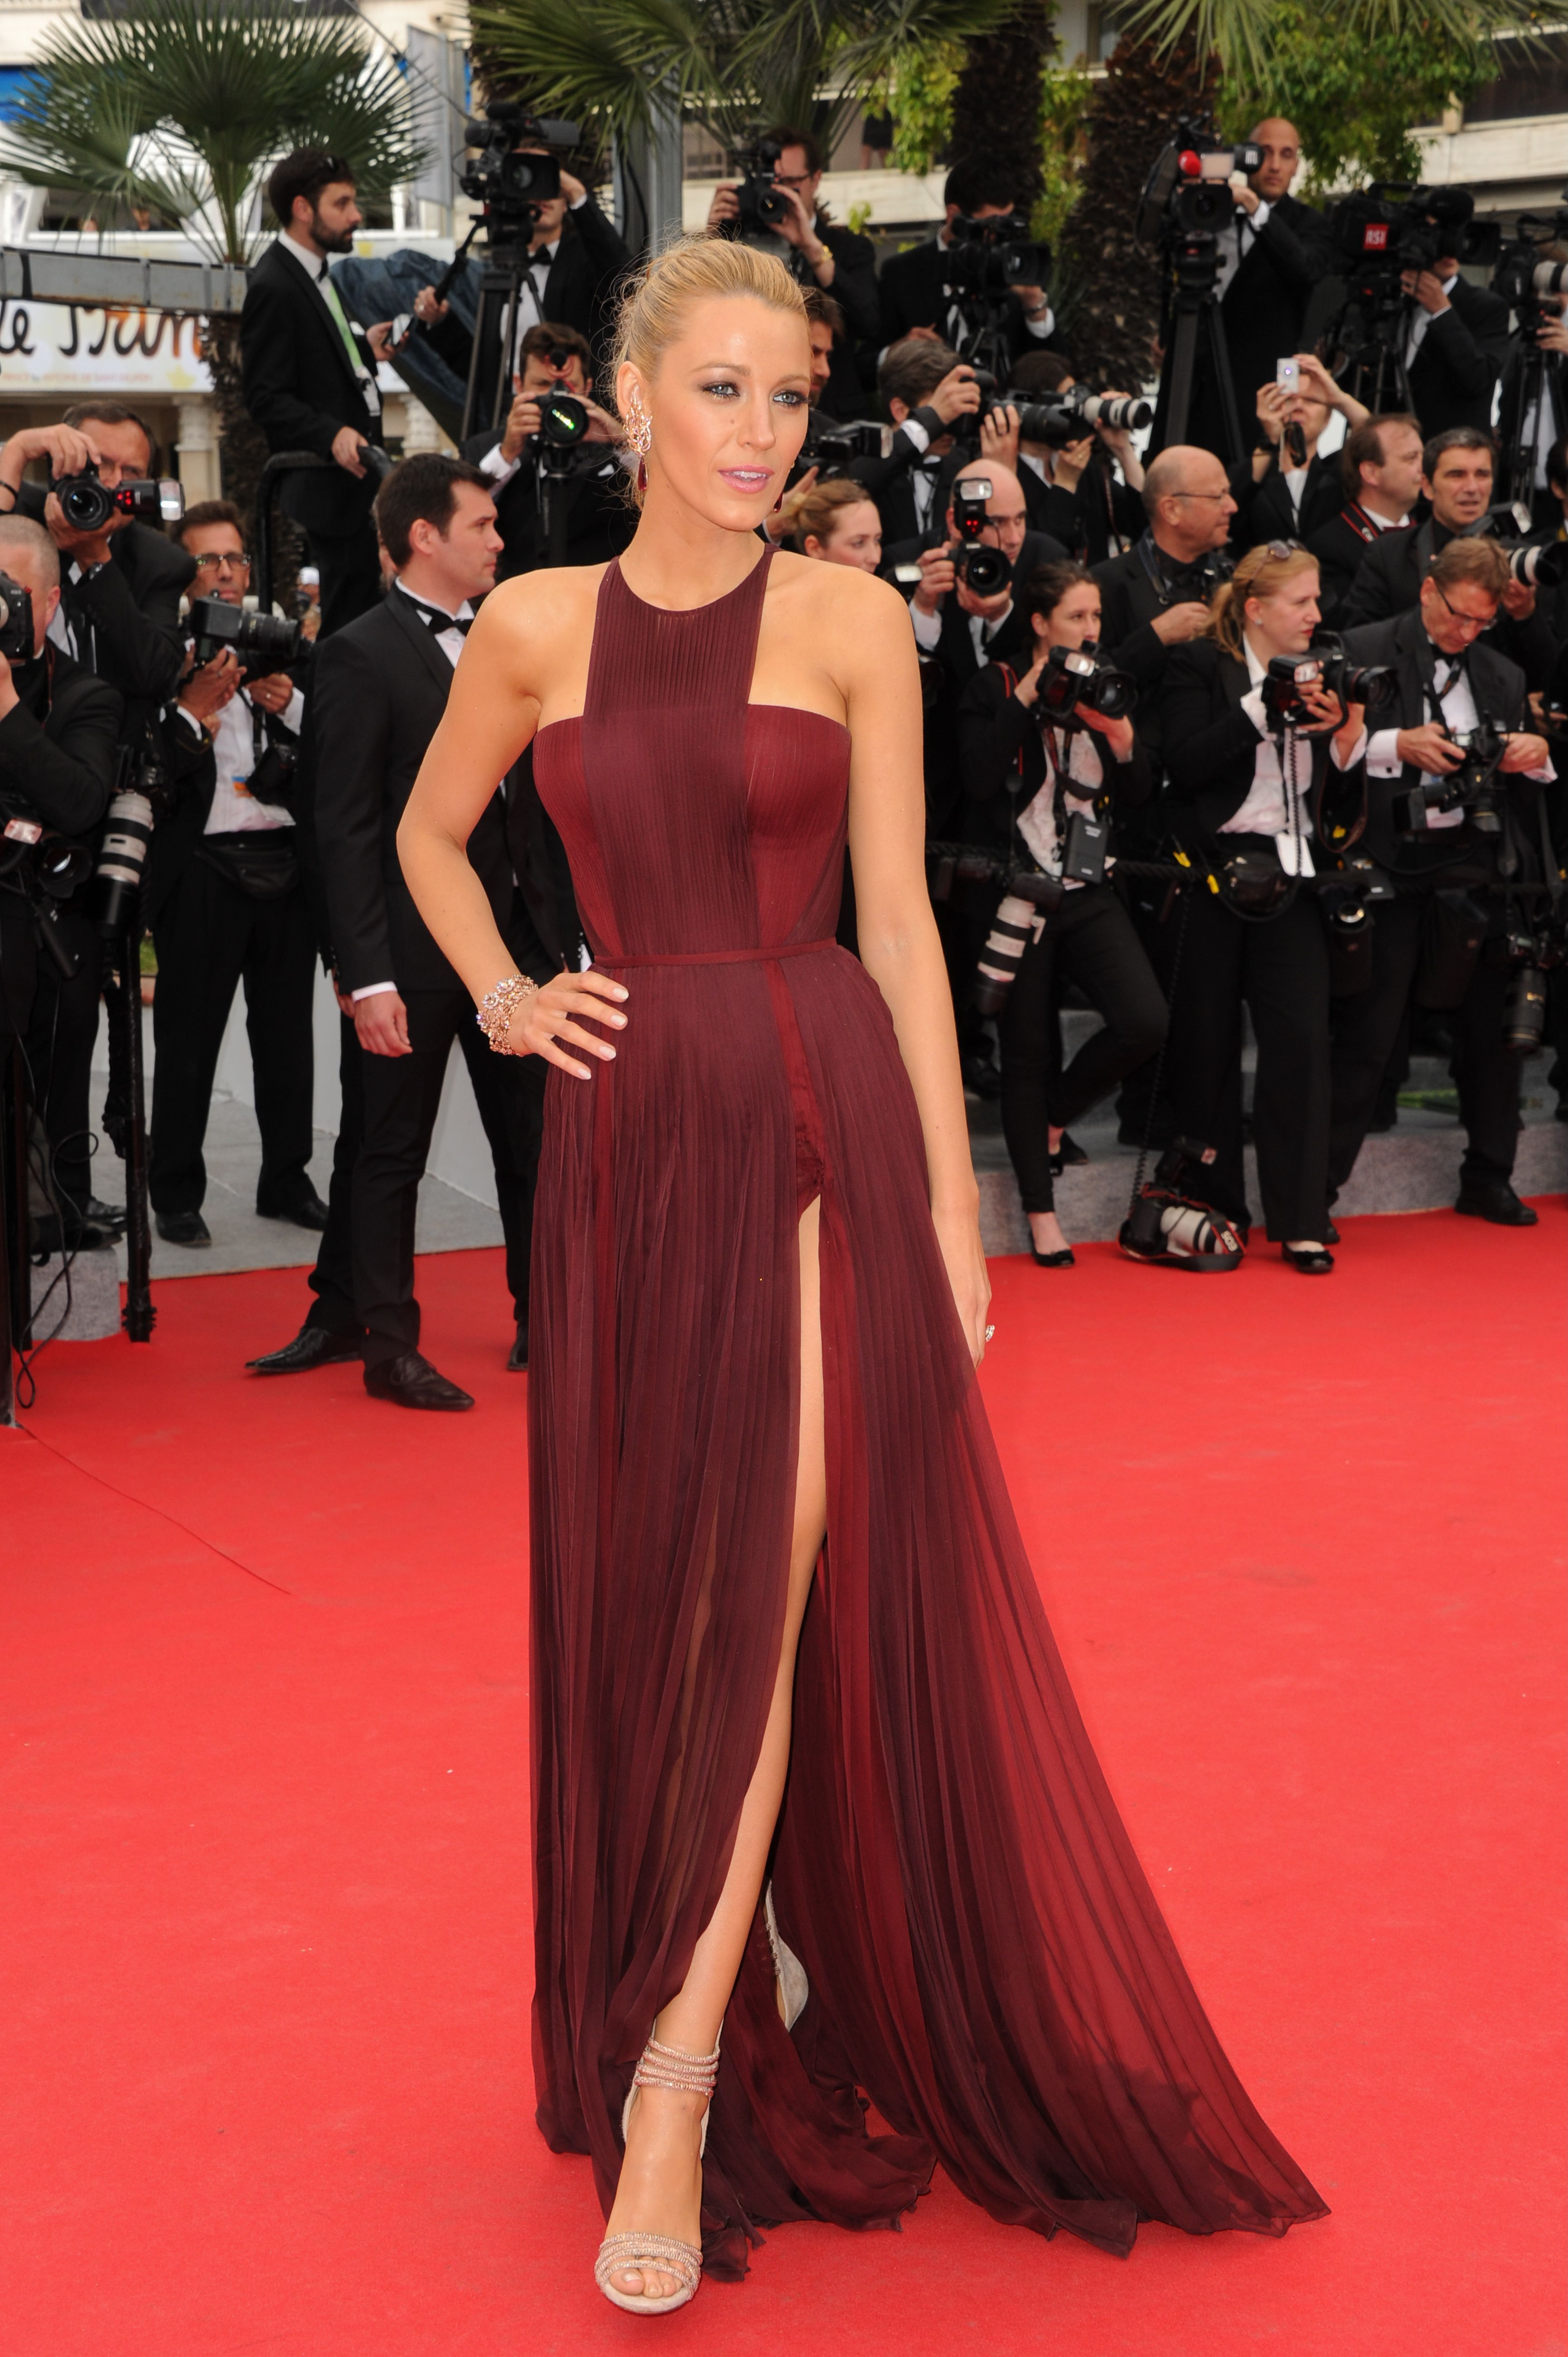 Blake lively wearing burgundy chiffon evening dress beige